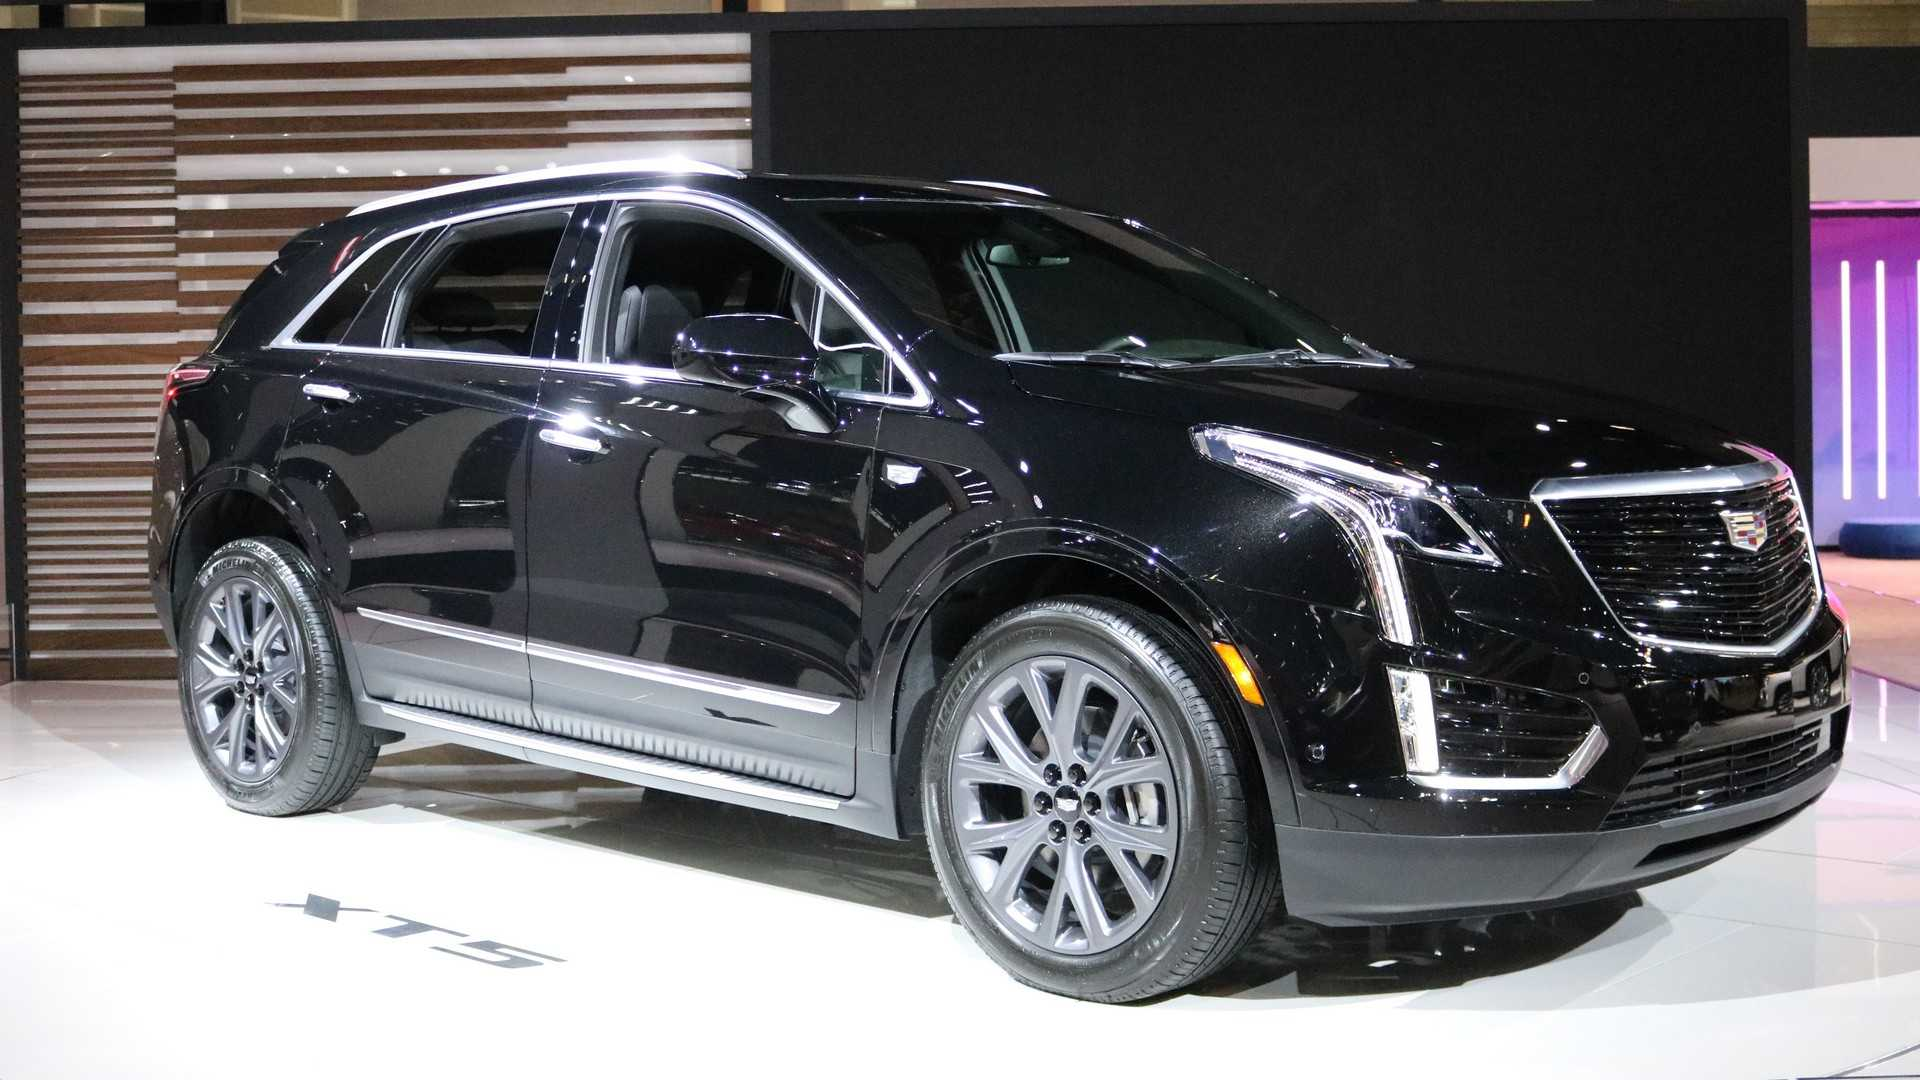 66 A When Will The 2020 Cadillac Xt5 Be Available Wallpaper